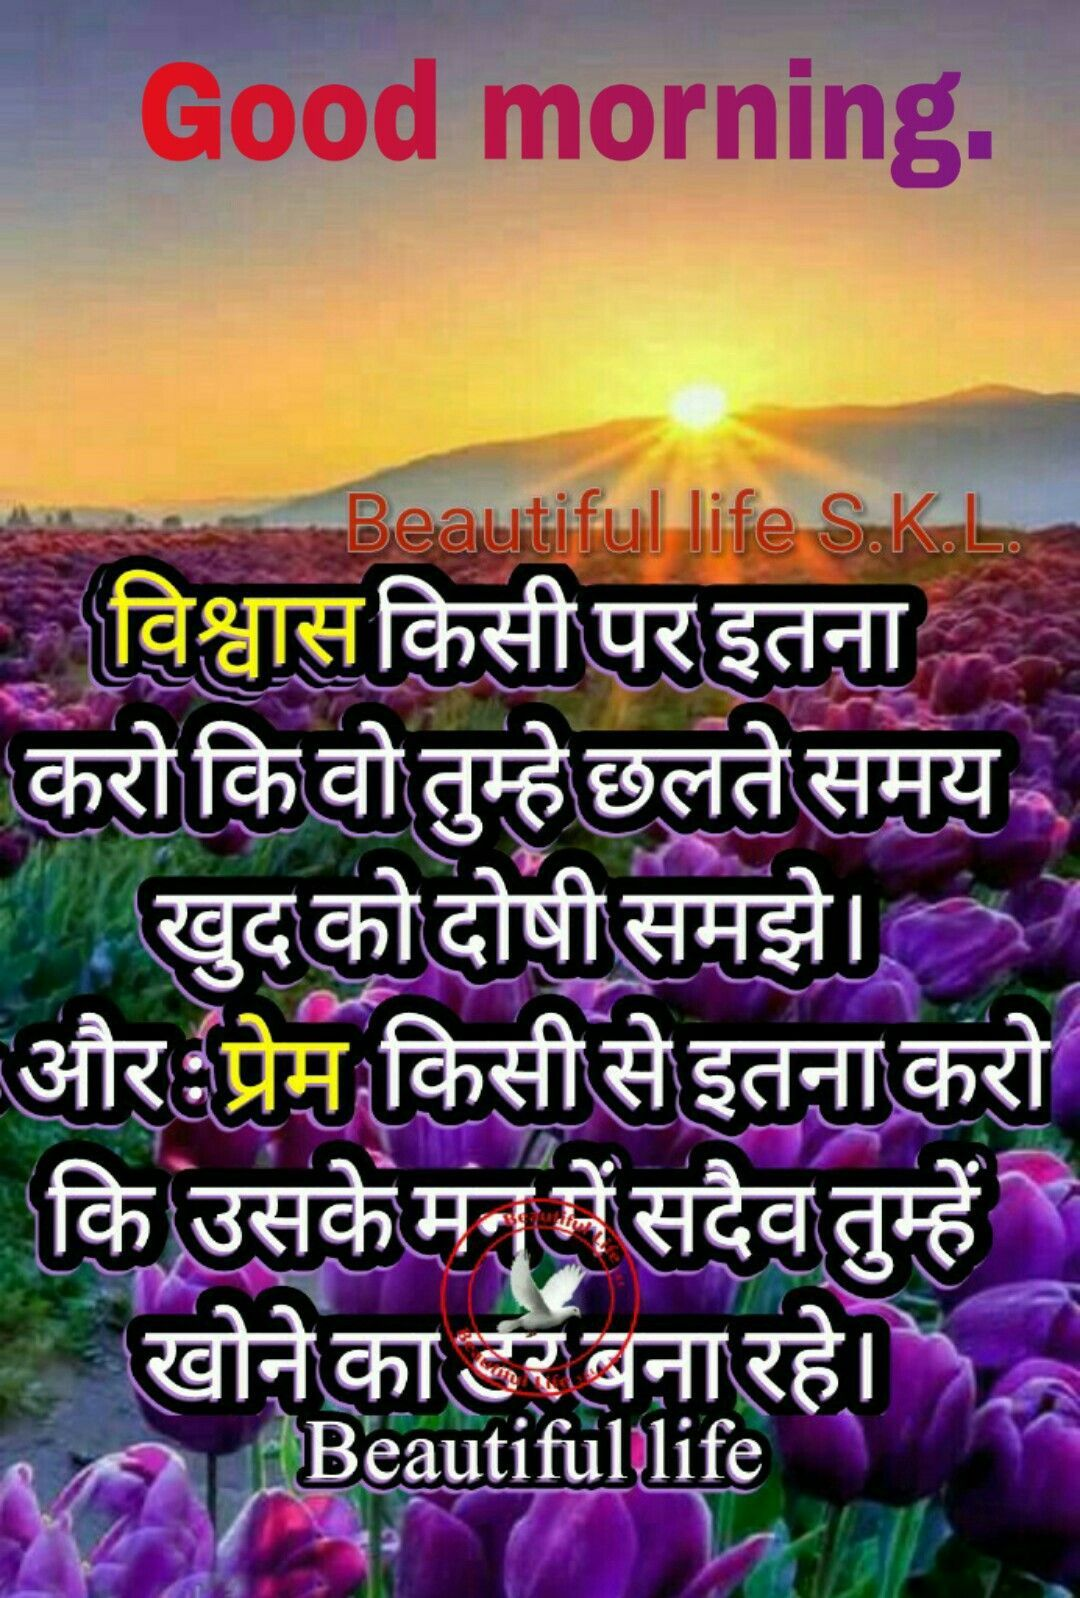 29+ good morning life inspirational quotes in hindi - best